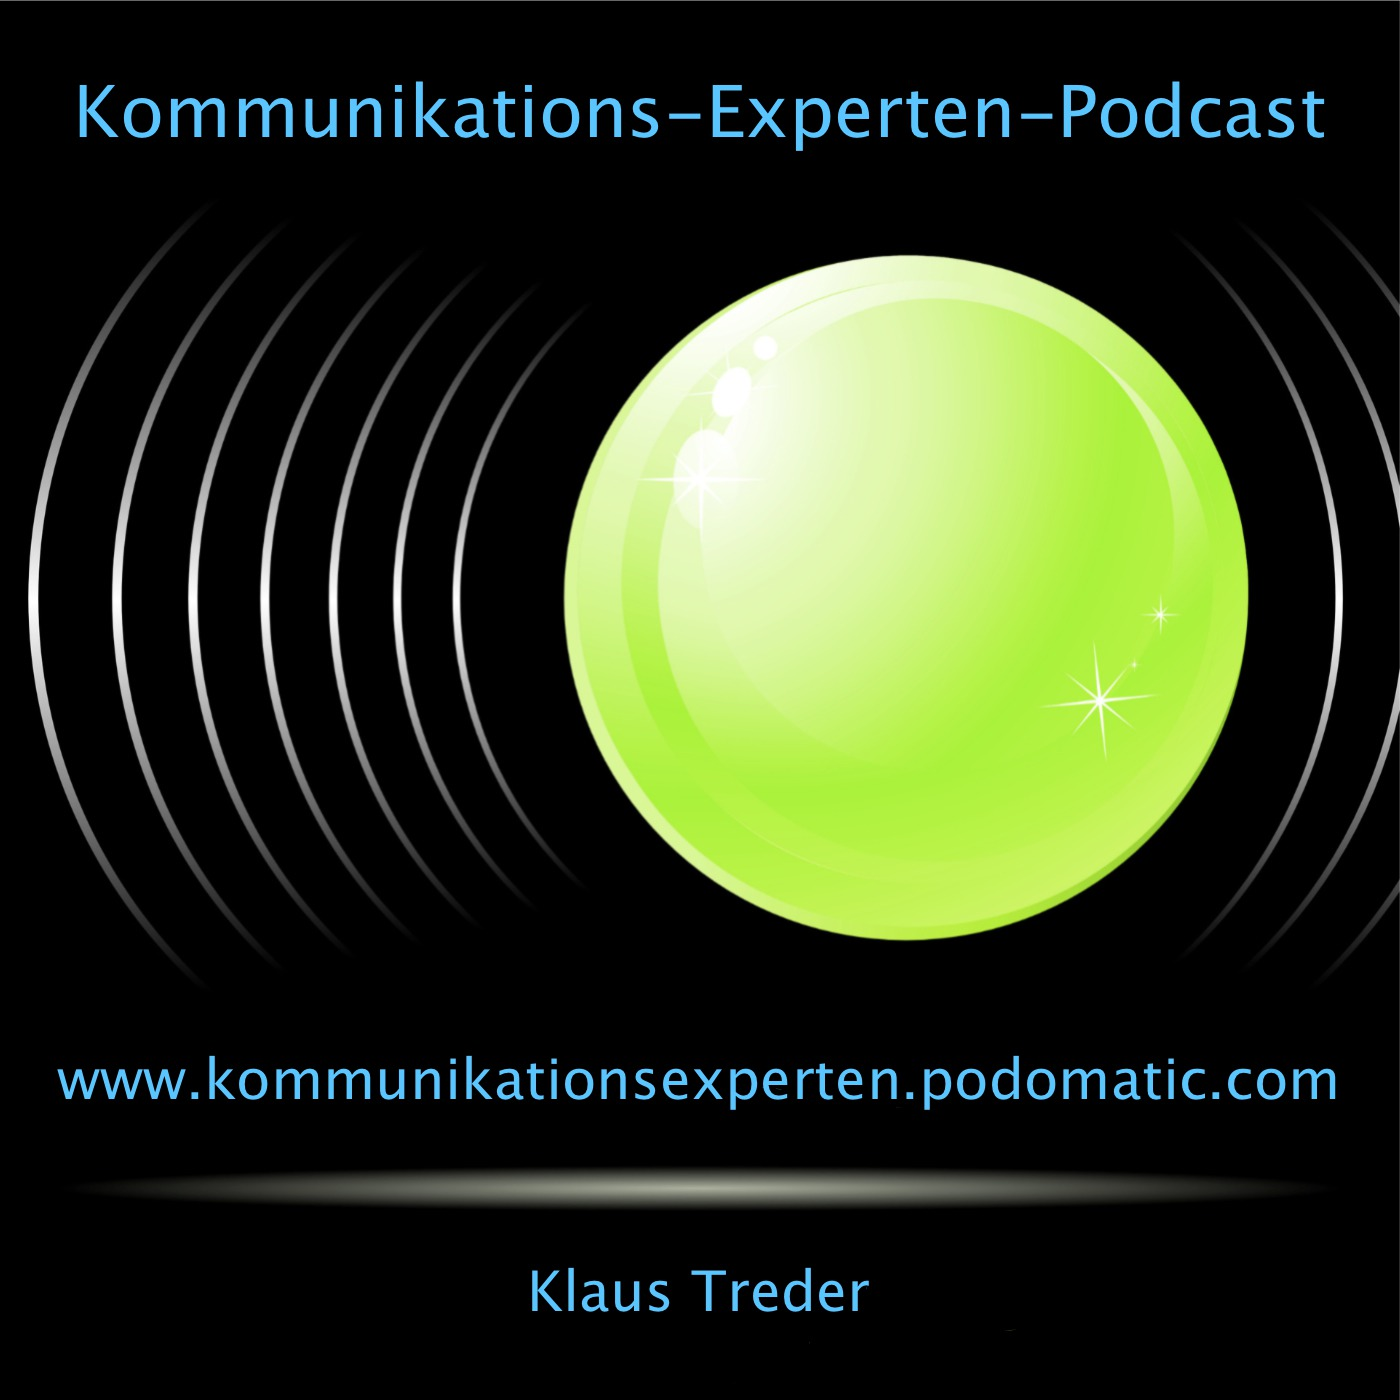 Kommunikations-Experten-Podcast